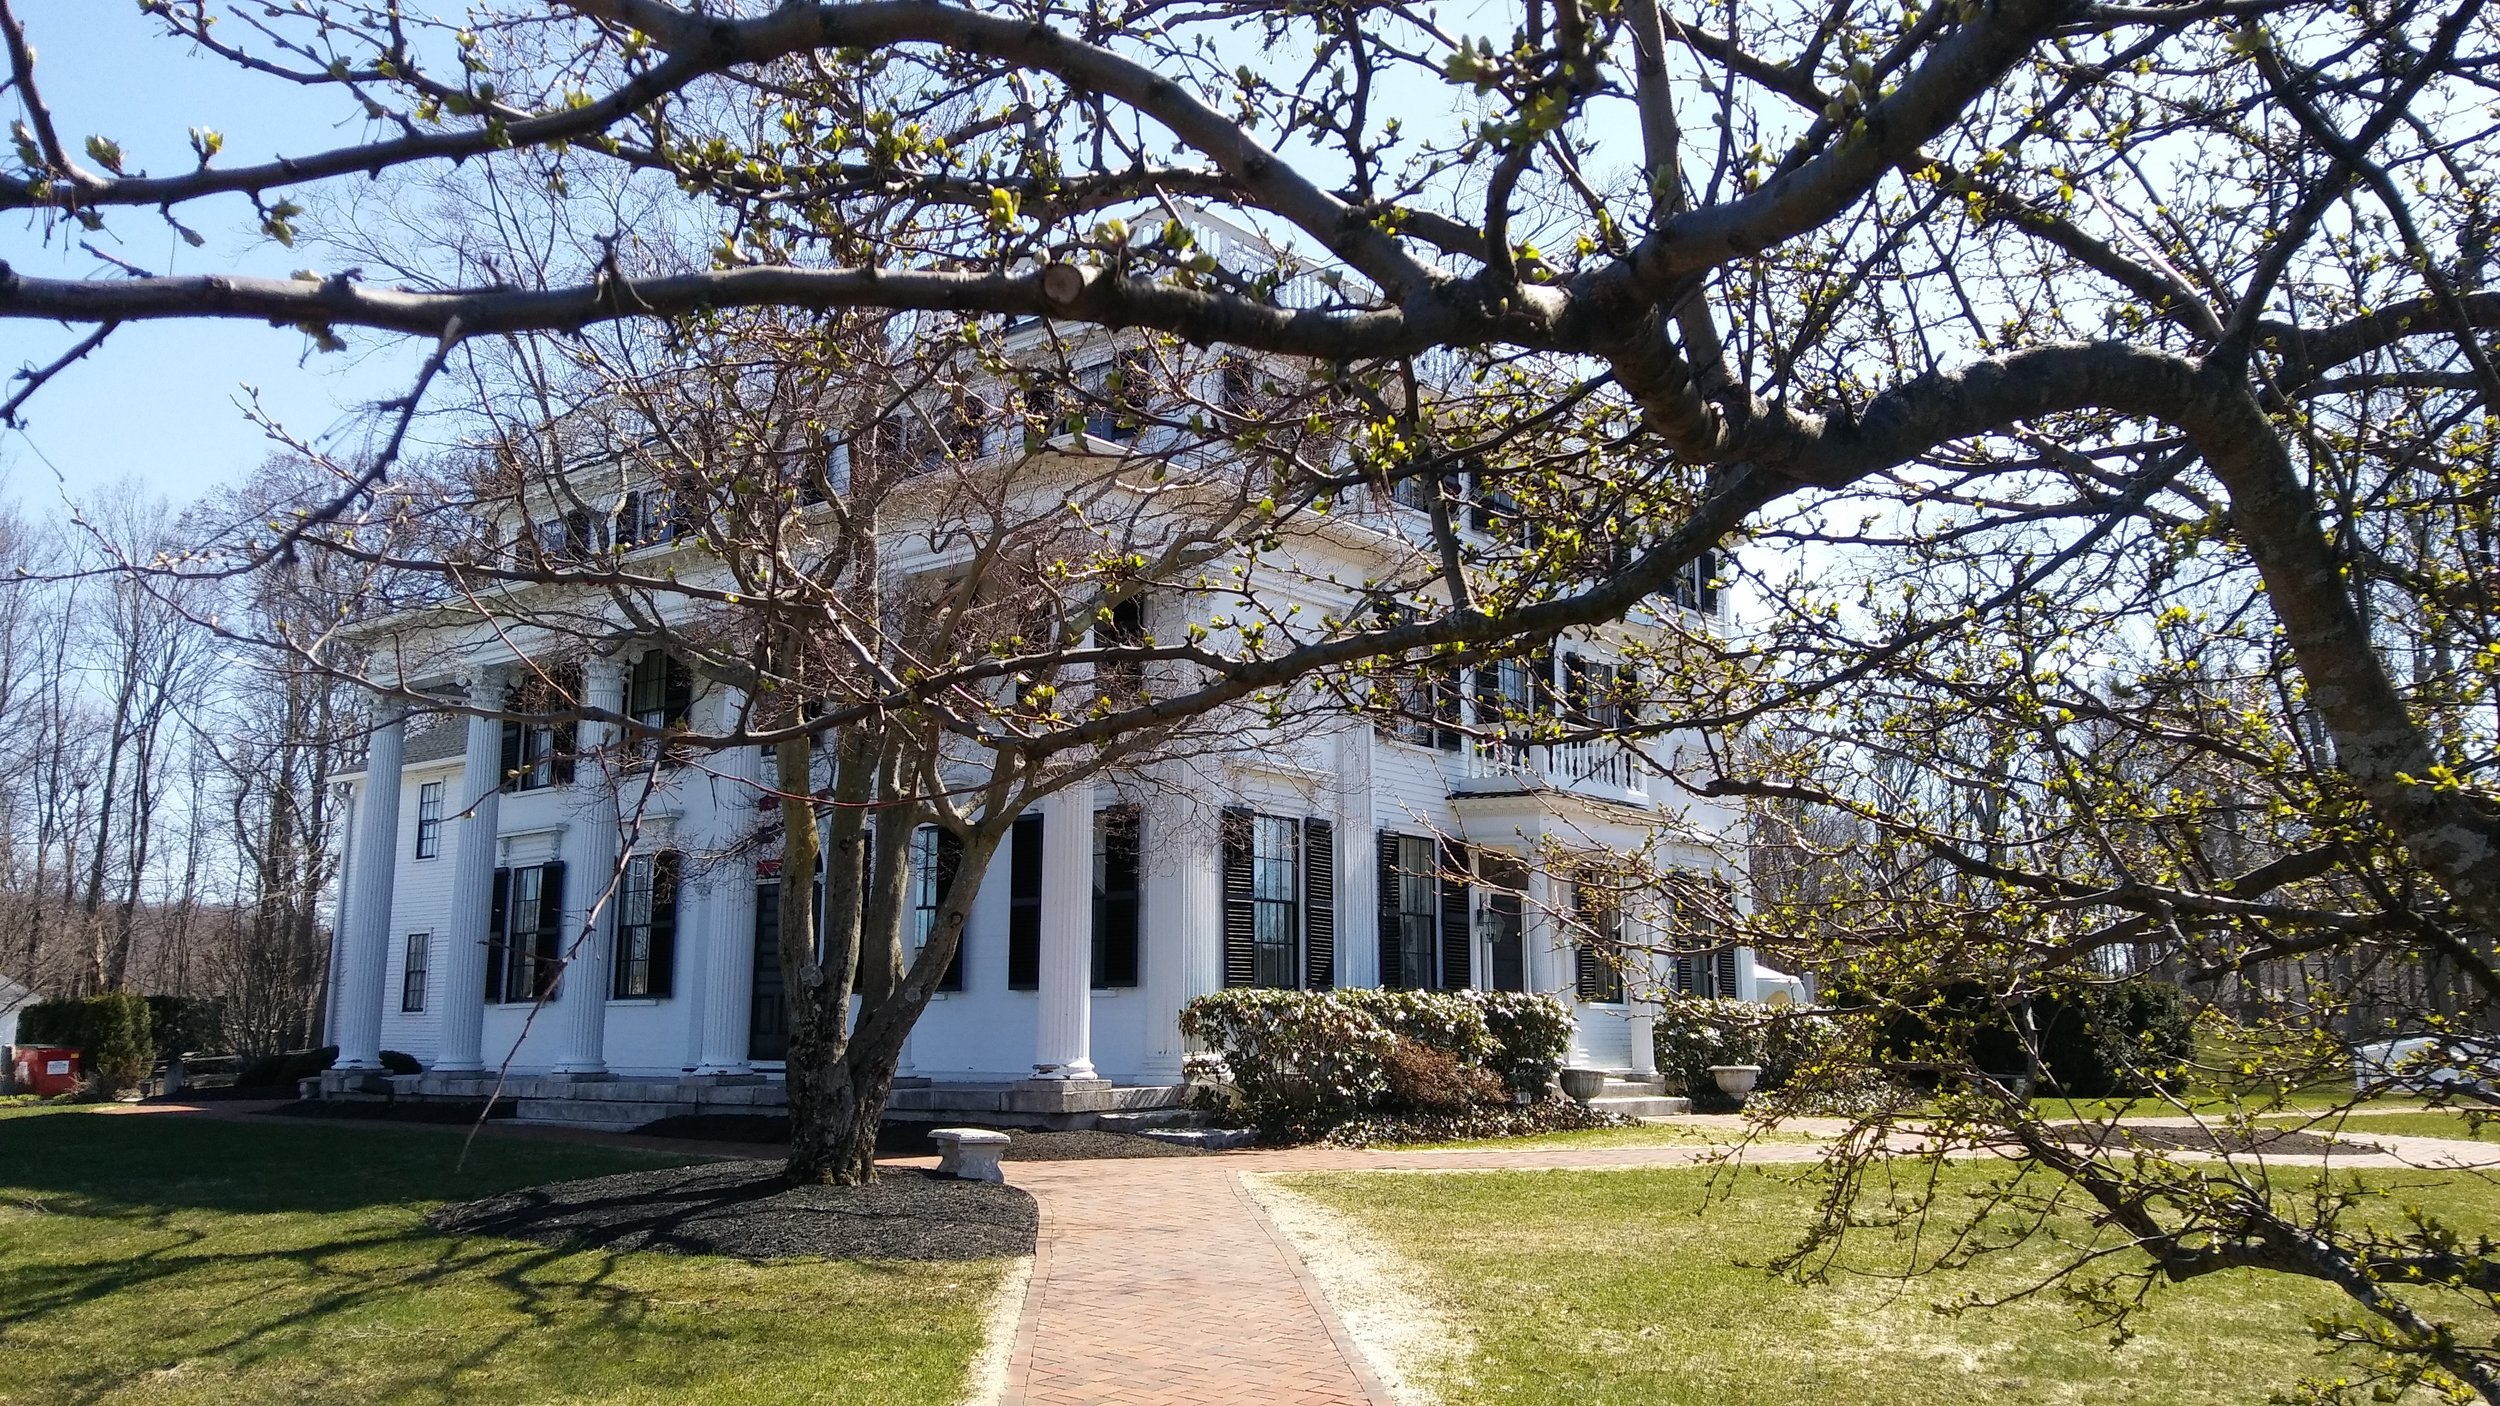 The northeast view of the Asa Waters Mansion, early spring. Photo: Mary Bowen, Asa Waters Mansion.